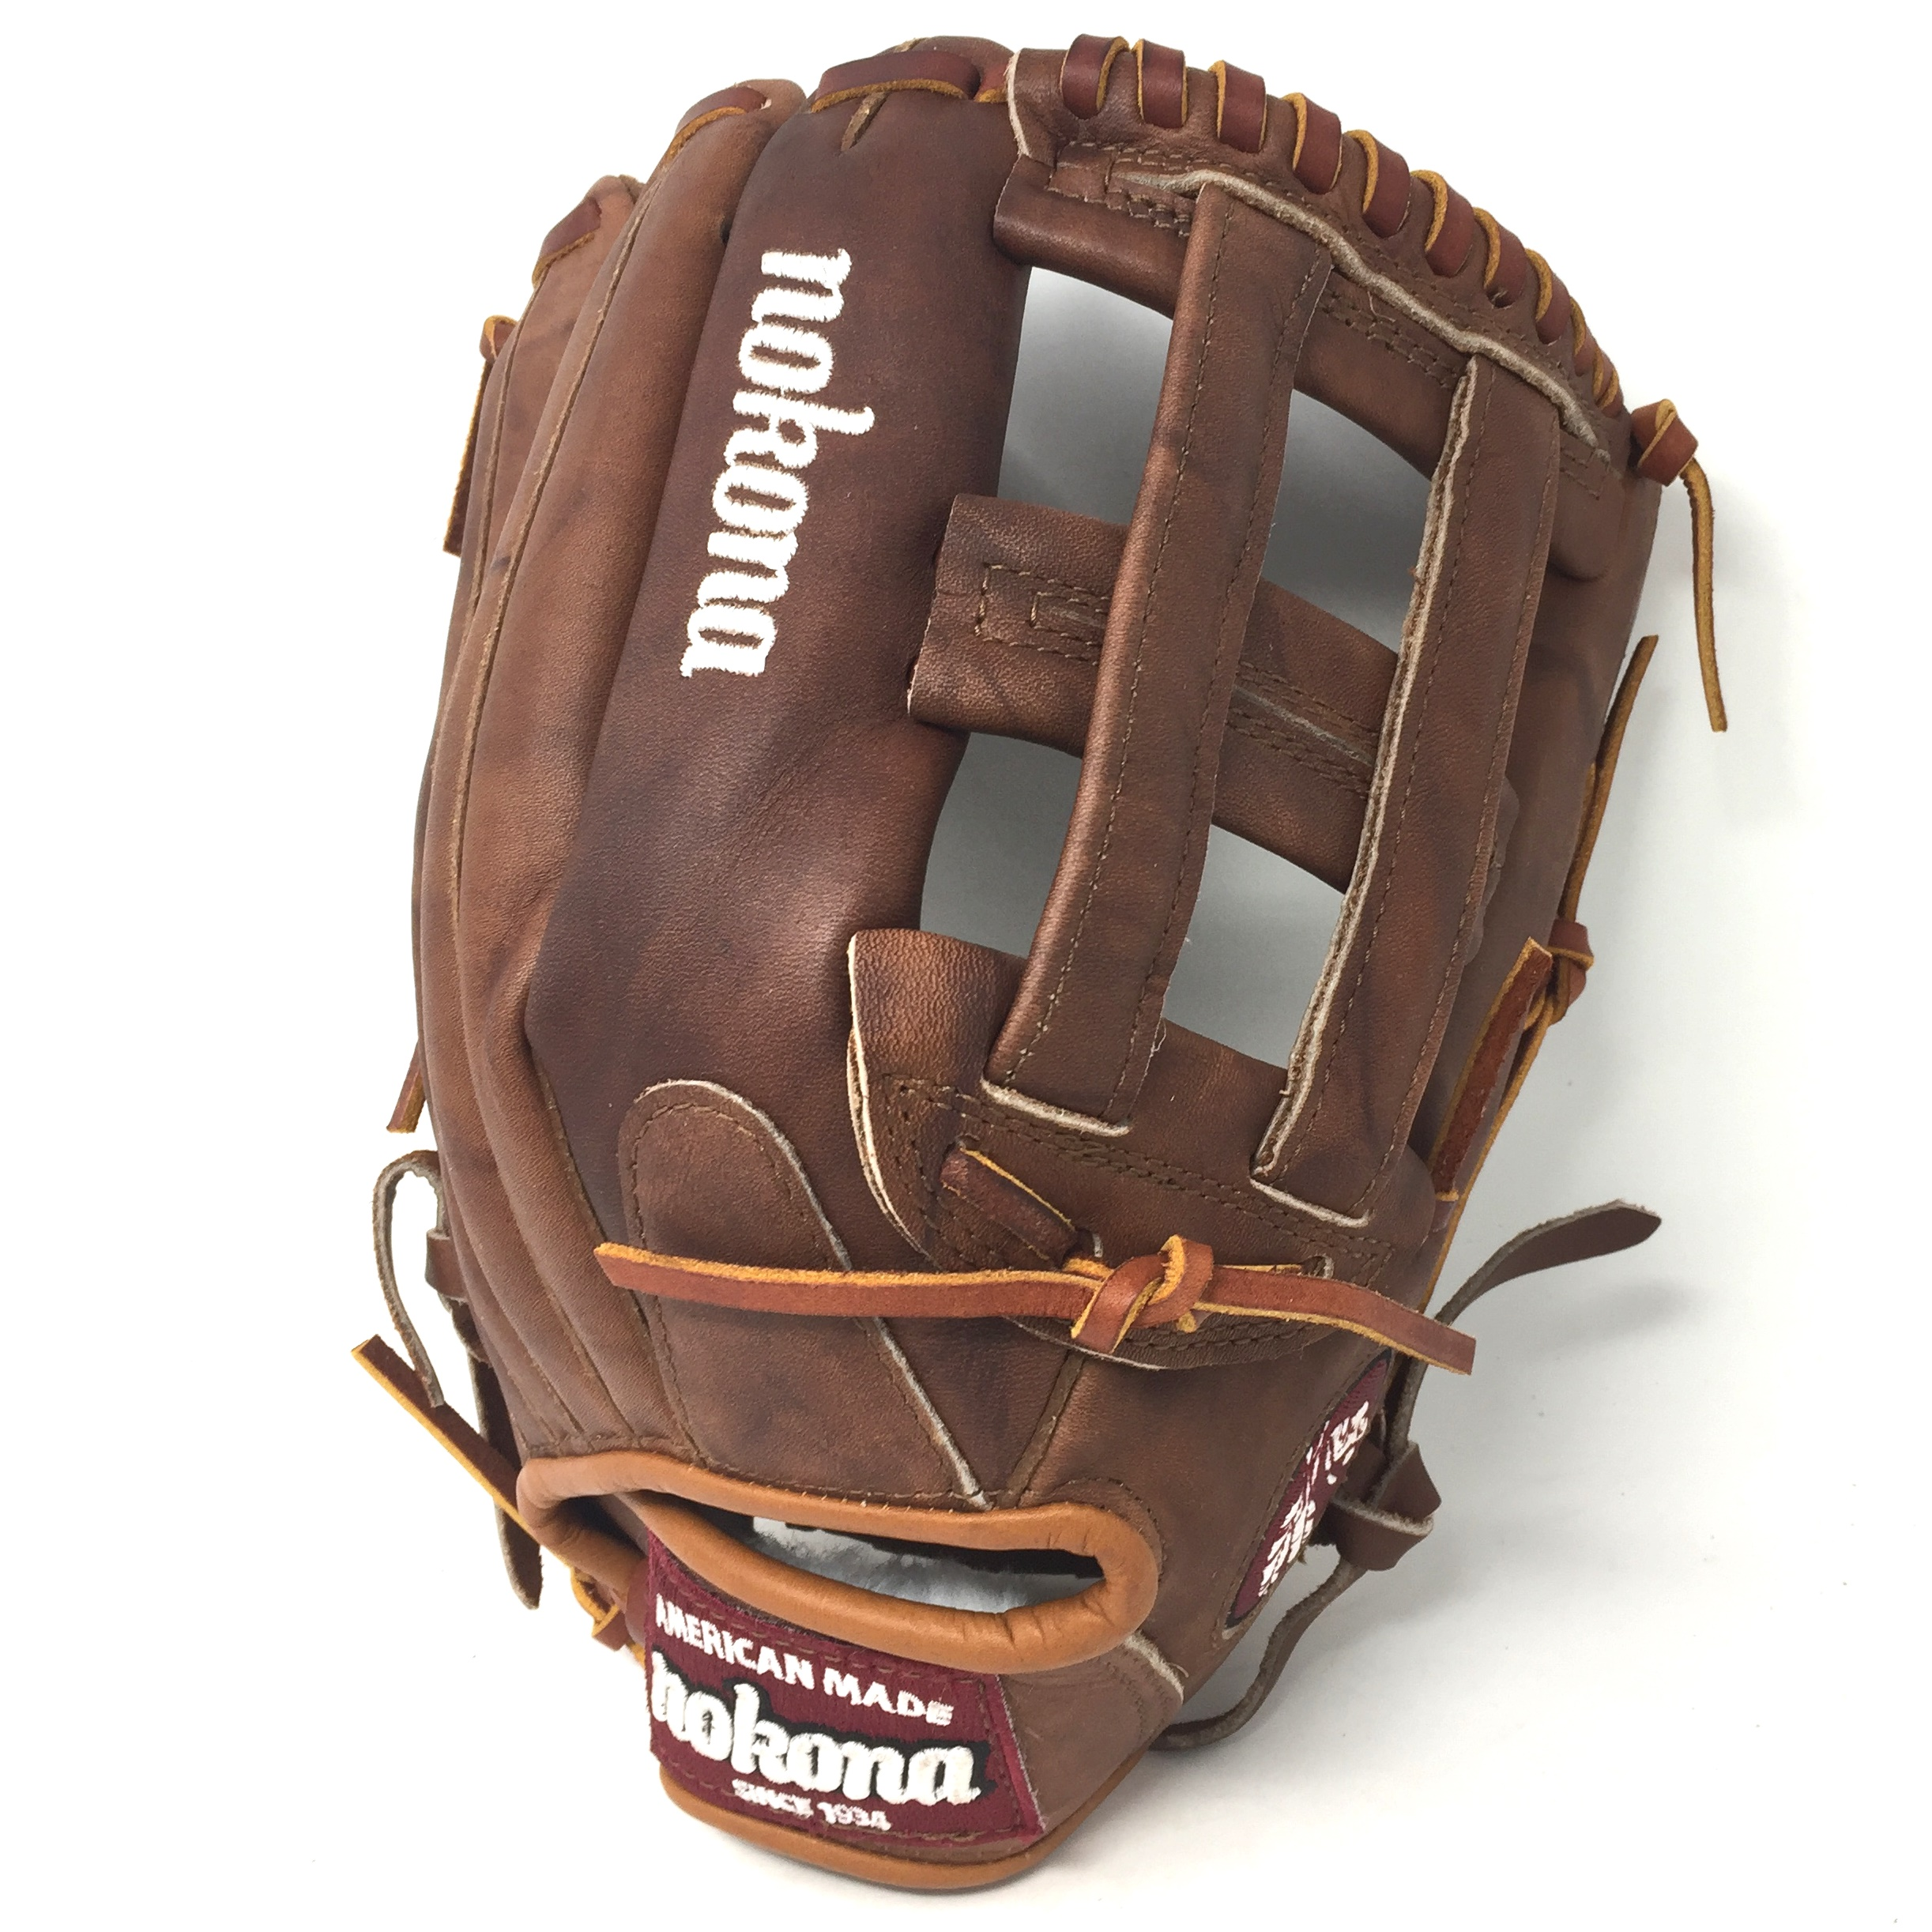 Nokona built its reputation on its legendary Walnut Leather and the Walnut Classic Series. Entering into a new era of Nokona gloves, the Nocona, Texas-based company is switching things up with the introduction of its new Walnut HHH Leather. Walnut HHH is a beefed up version of the Walnut Classic Leather for sturdier performance that some players prefer. The Triple H indicates a leather that is between 5.2 and 6 ounces, making these new Walnut gloves some of the stiffest that Nokona manufactures. Walnut HHH maintains the character, look, and feel of Nokona's classic Walnut, but with a stiffer feel. Once a Walnut HHH glove is broken-in, players are left with a glove that is soft and supple, yet remains sturdy - a true, classic.